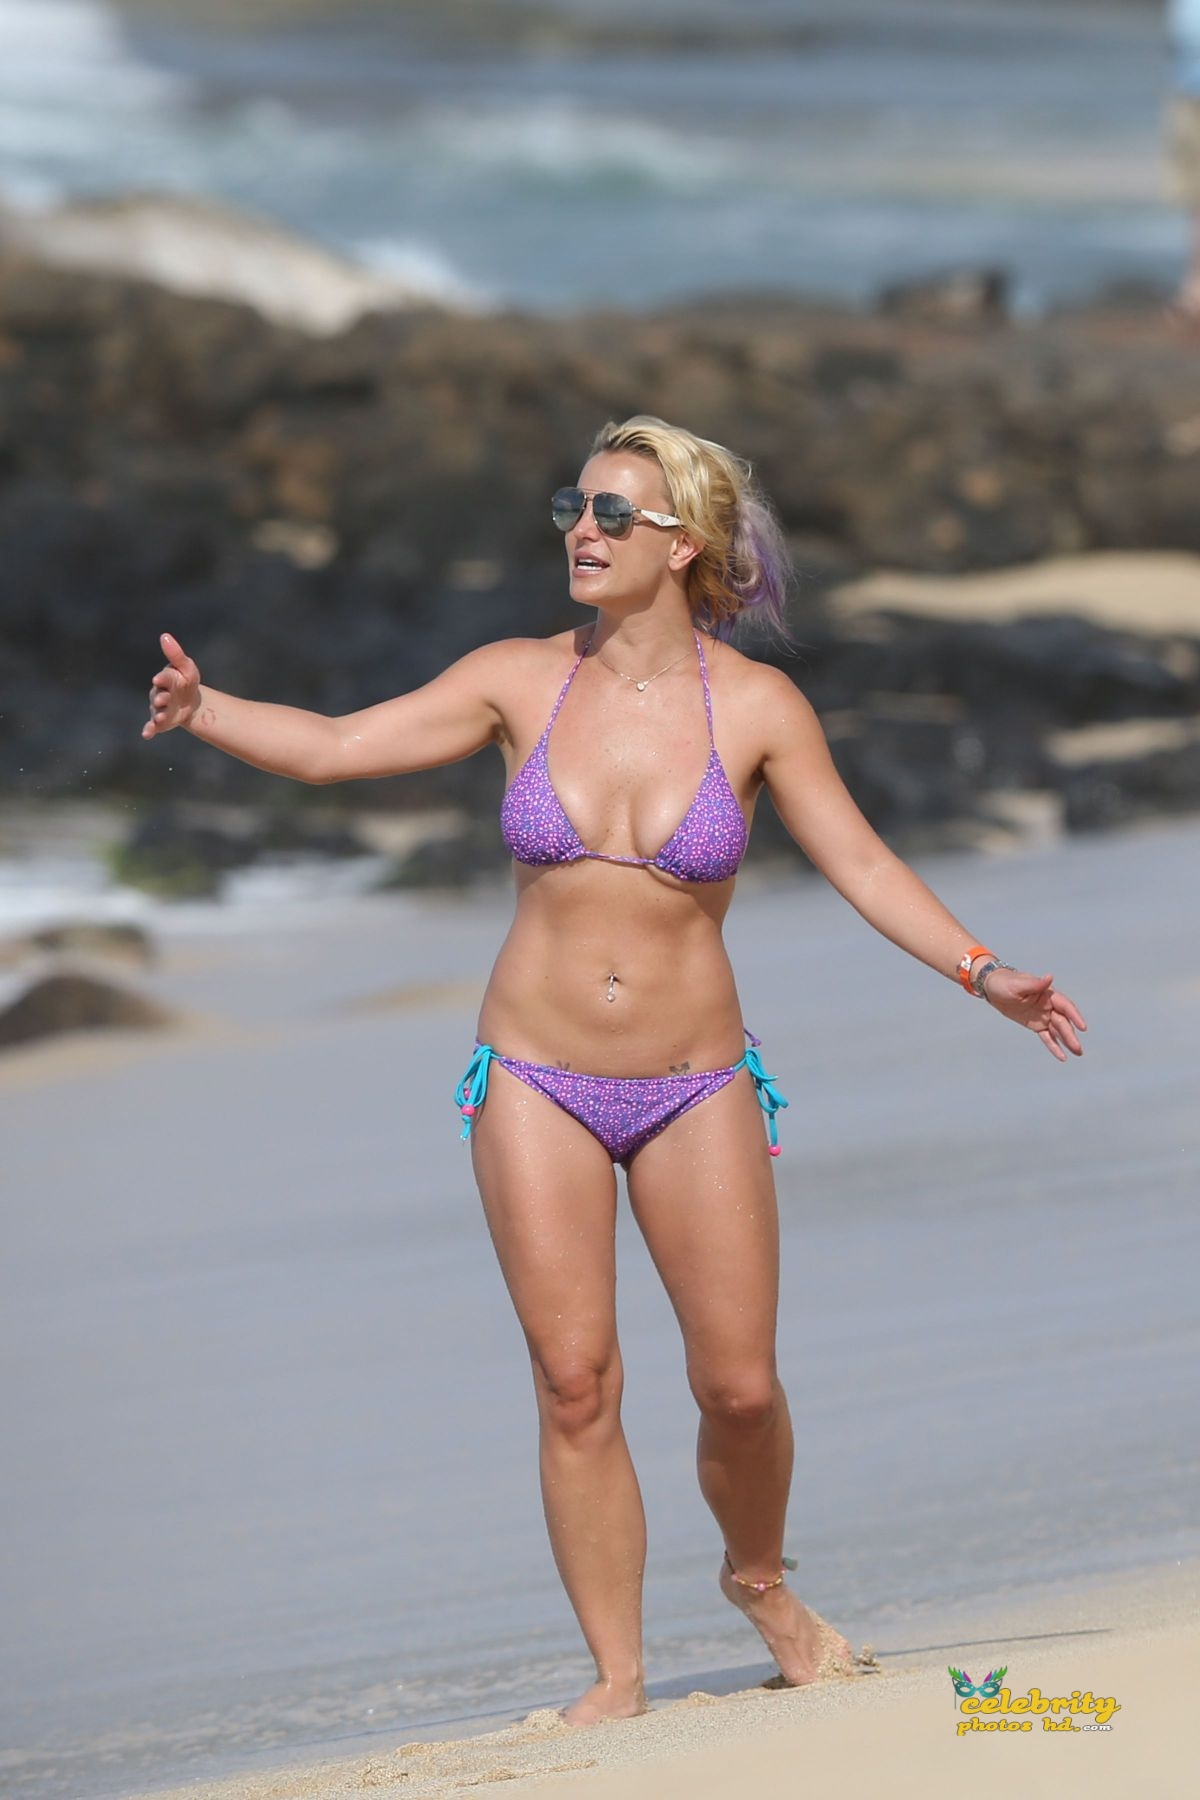 britney-spears-in-bikini-at-a-beach-in-hawaii-07-23-2015_24